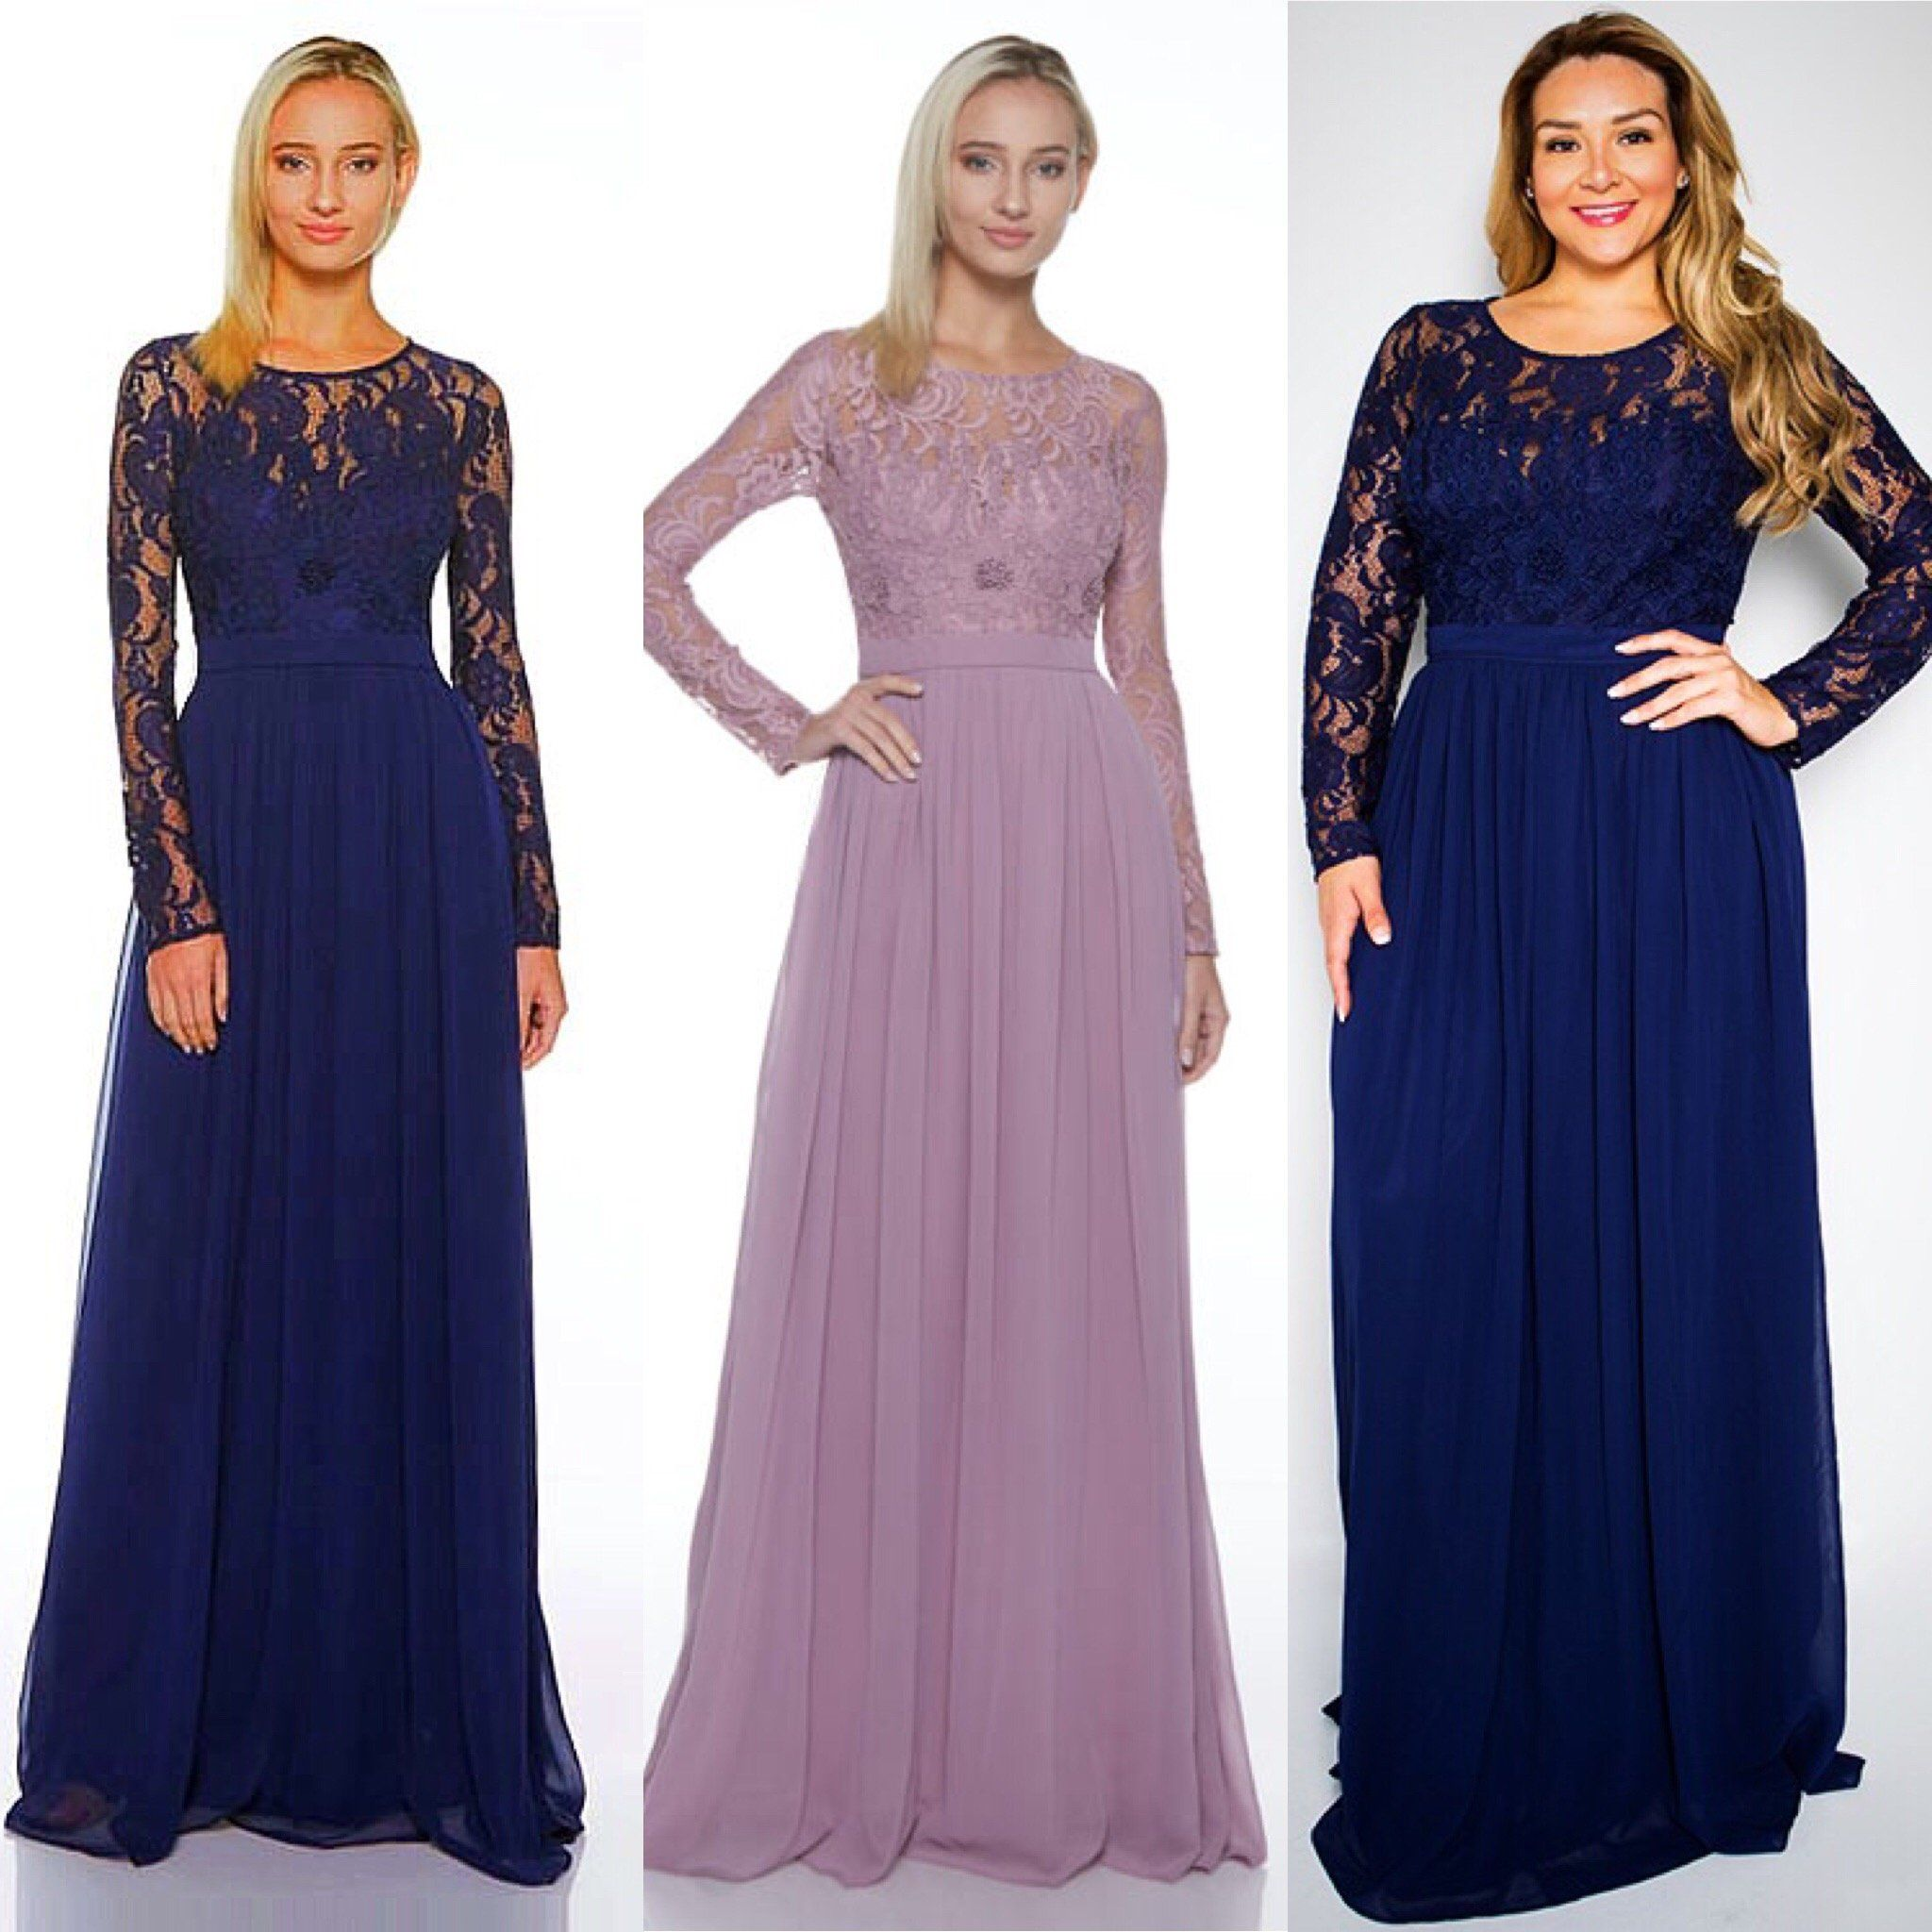 Affordable Floor Length Long Sleeves Maxi Chiffon Lace Plus Size Bridesmaid Dress In Navy Bridesmaid Dresses Plus Size Chiffon Lace Dresses